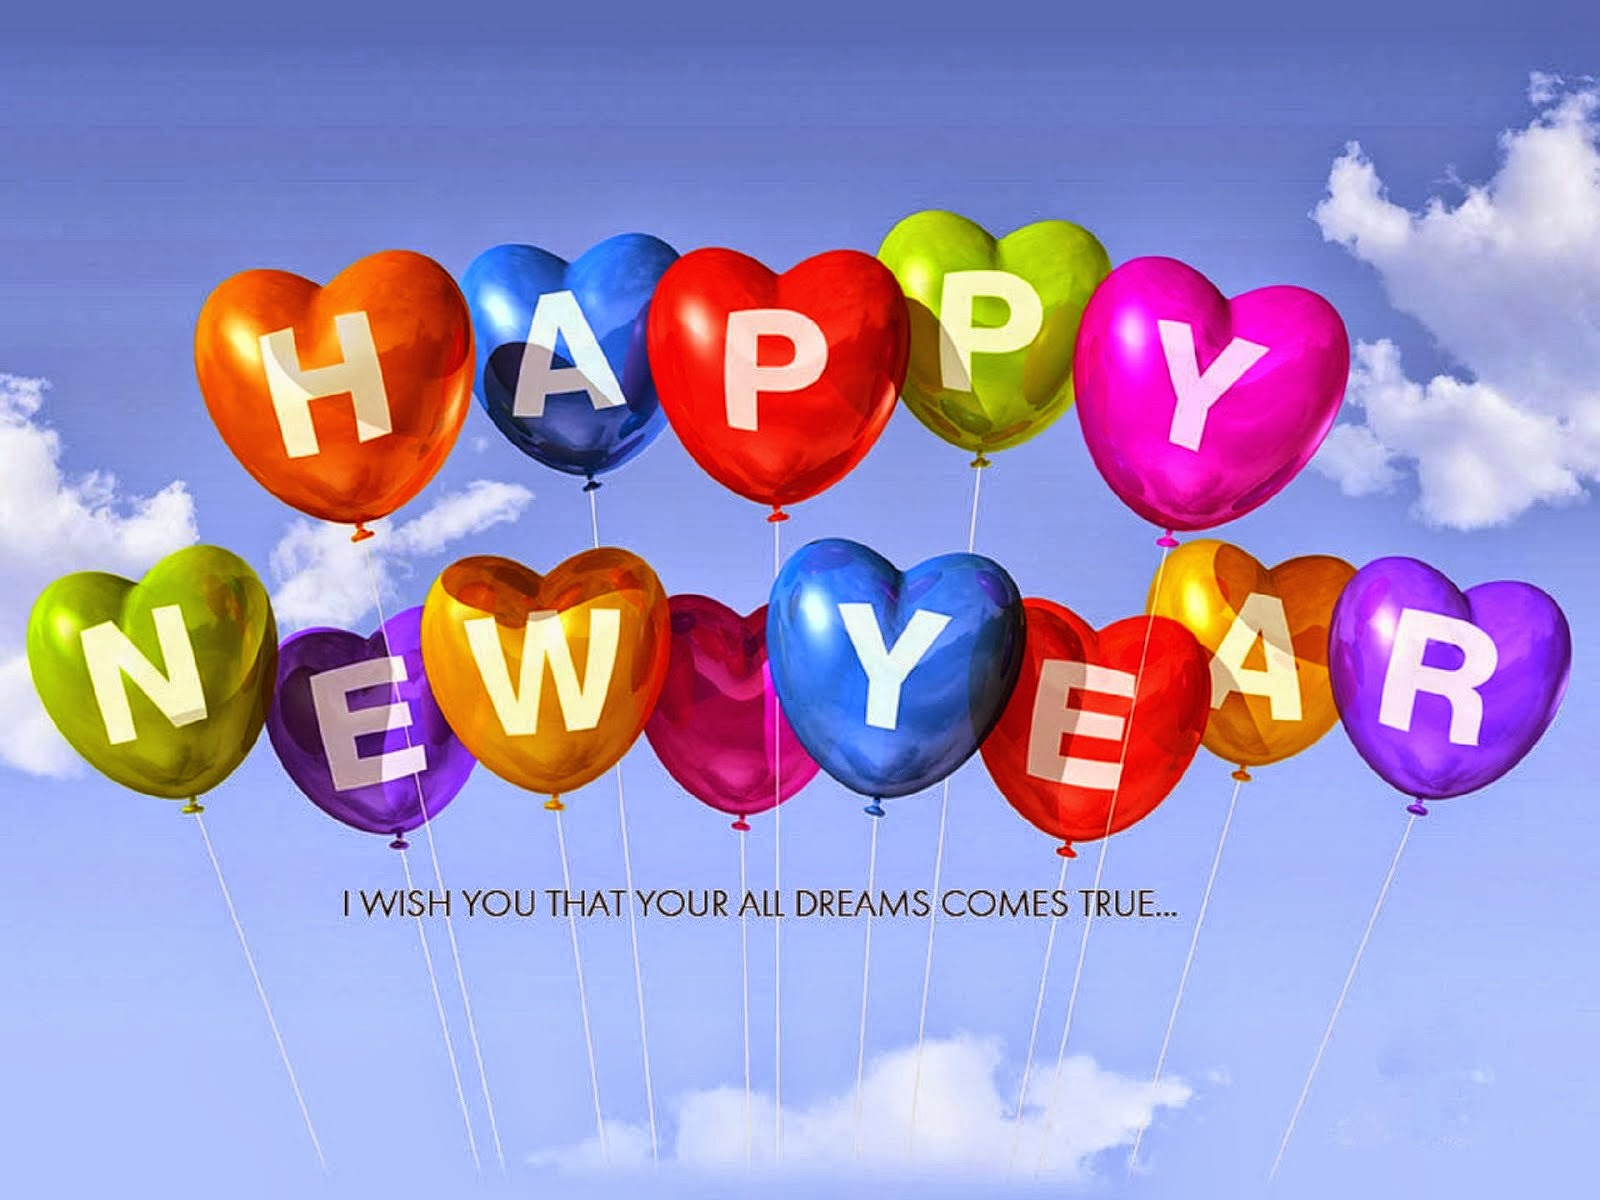 Happy new year 2015 wishes and greetings happy new year sms exchange gifts and enjoying in parities many ways to celebrate new year but sending wishes and greetings to everyone is cool way so download your latest new kristyandbryce Gallery